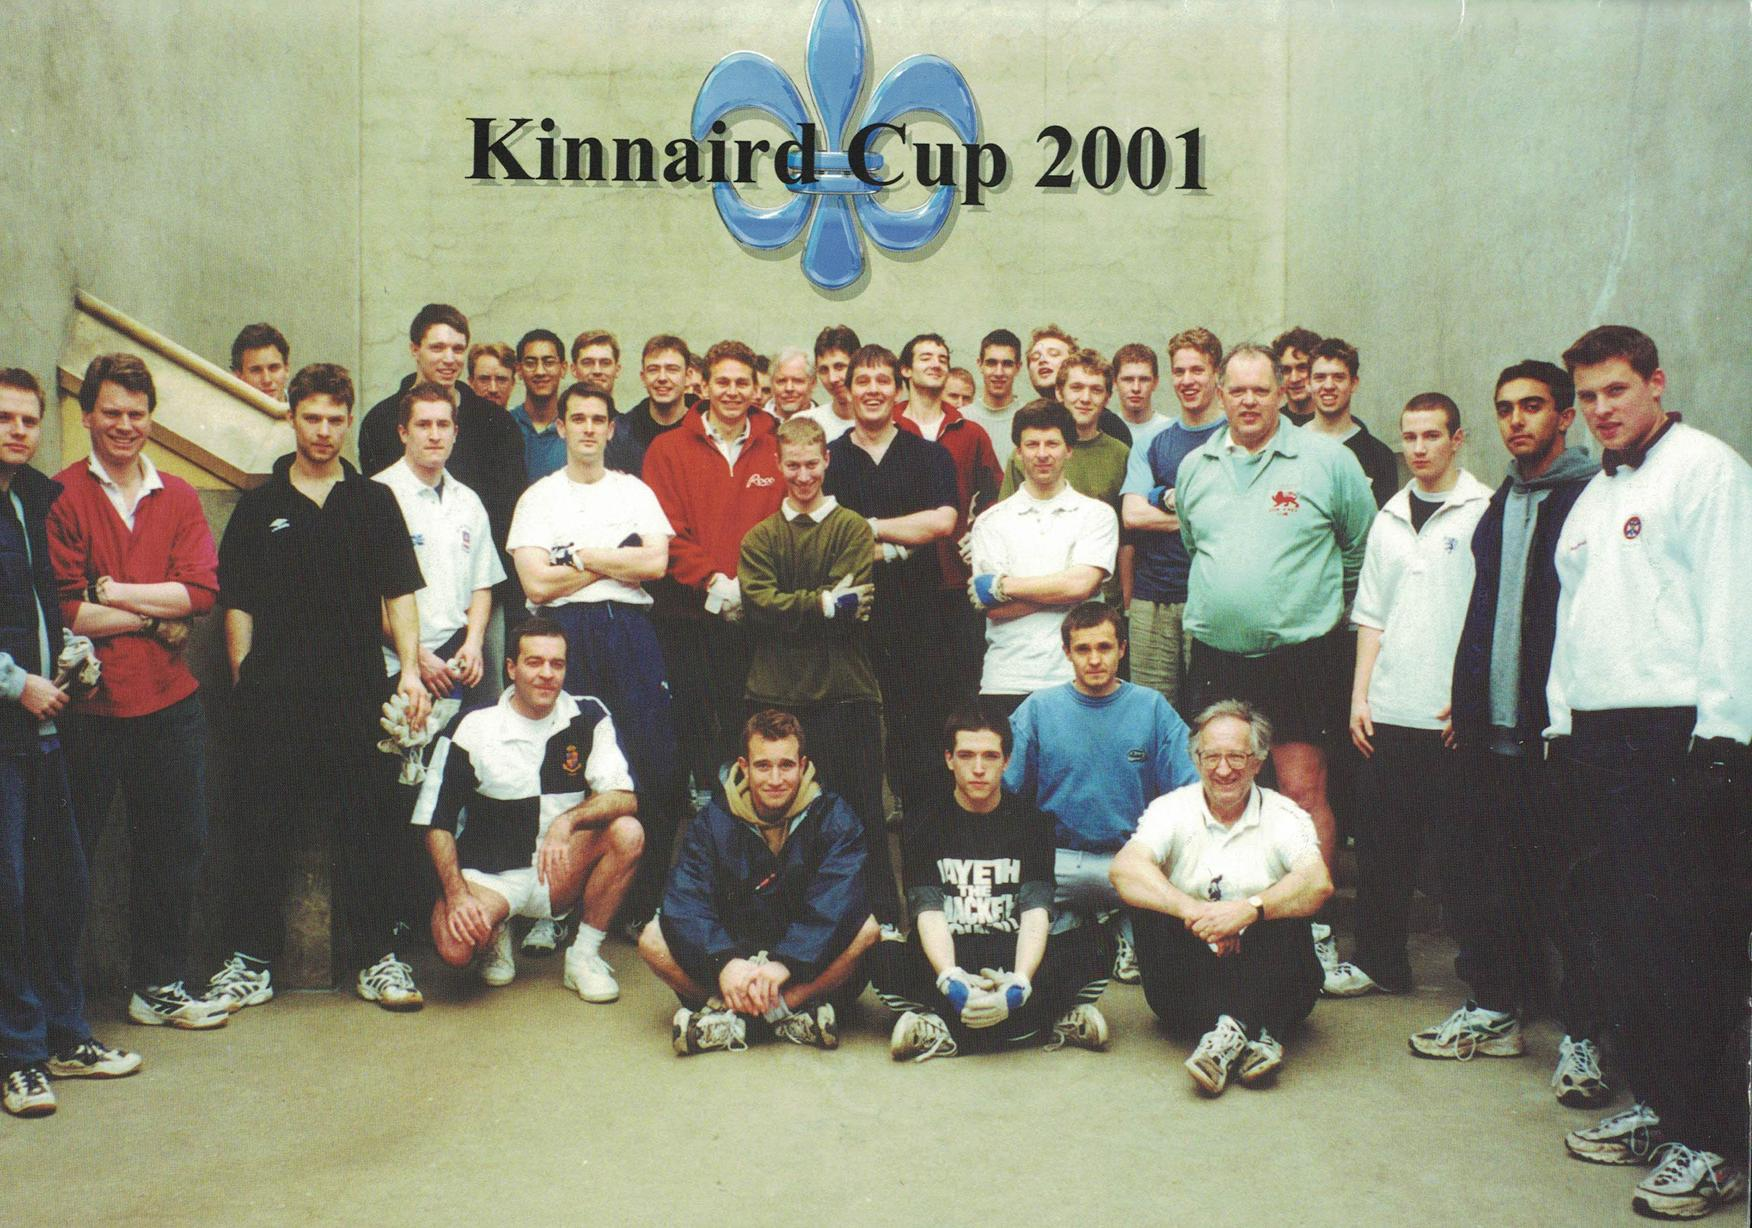 kinnaird group 2001